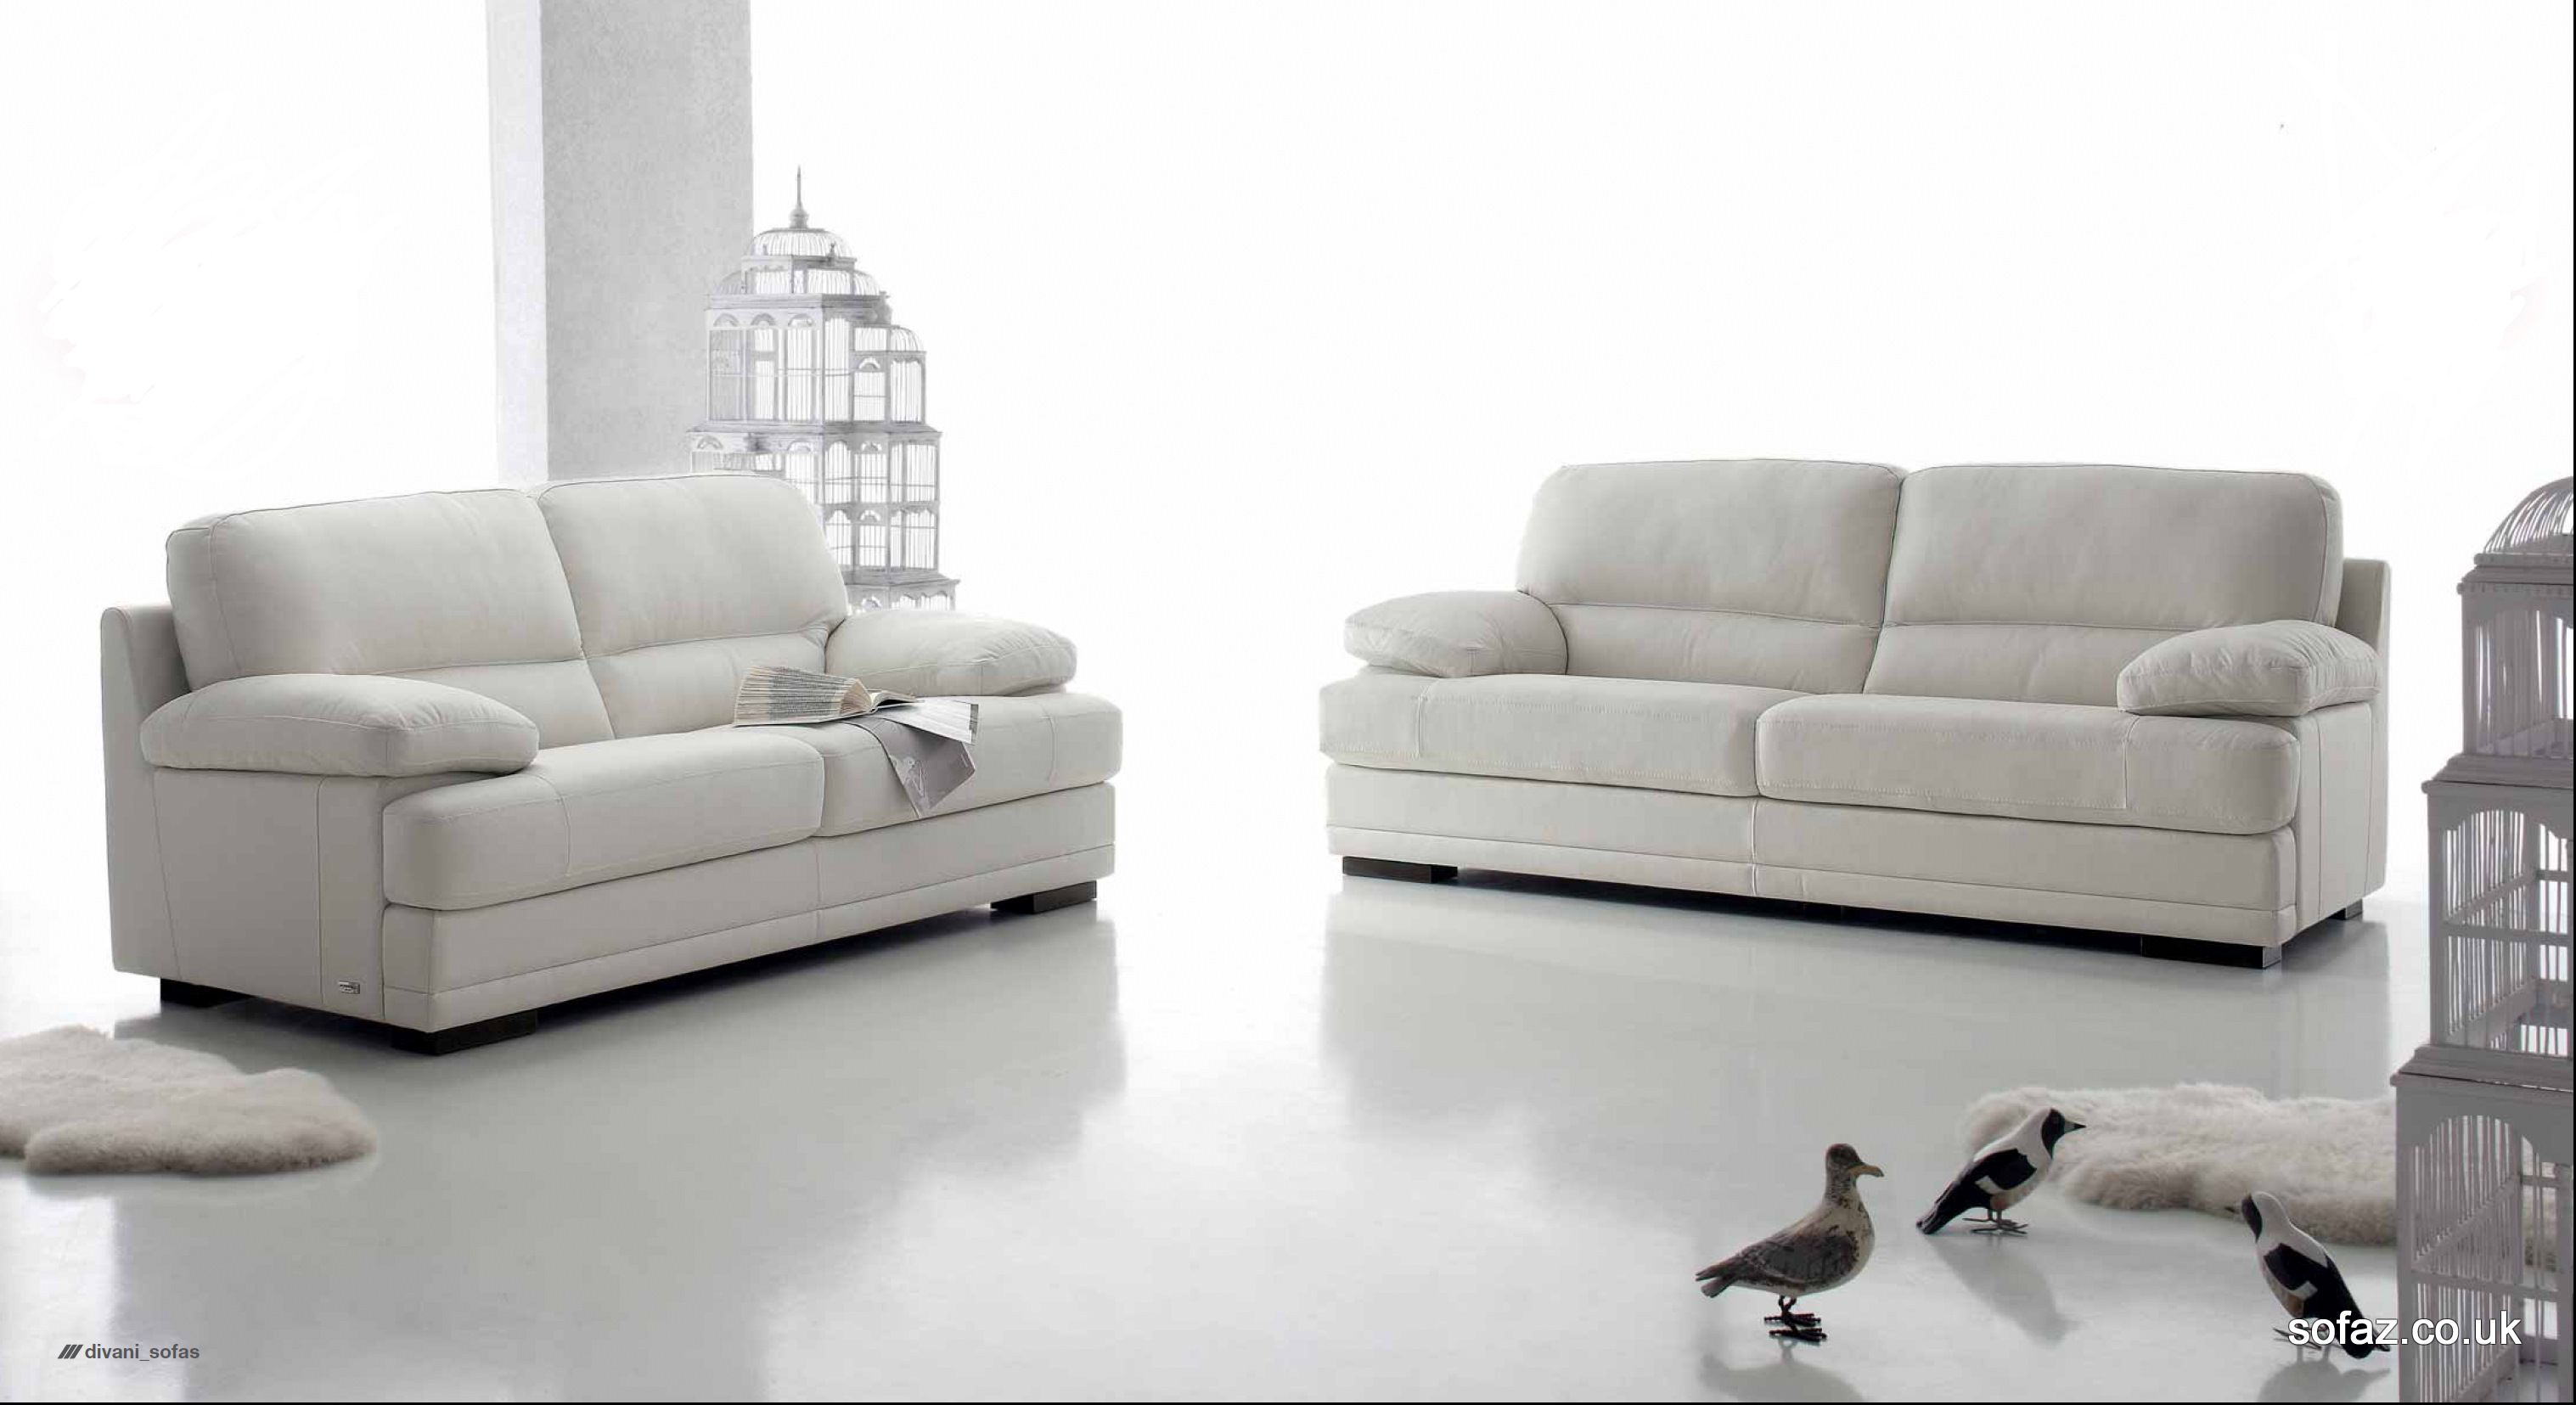 Luxury italian leather sofas magritte modern leather sofa for Leather sofa set